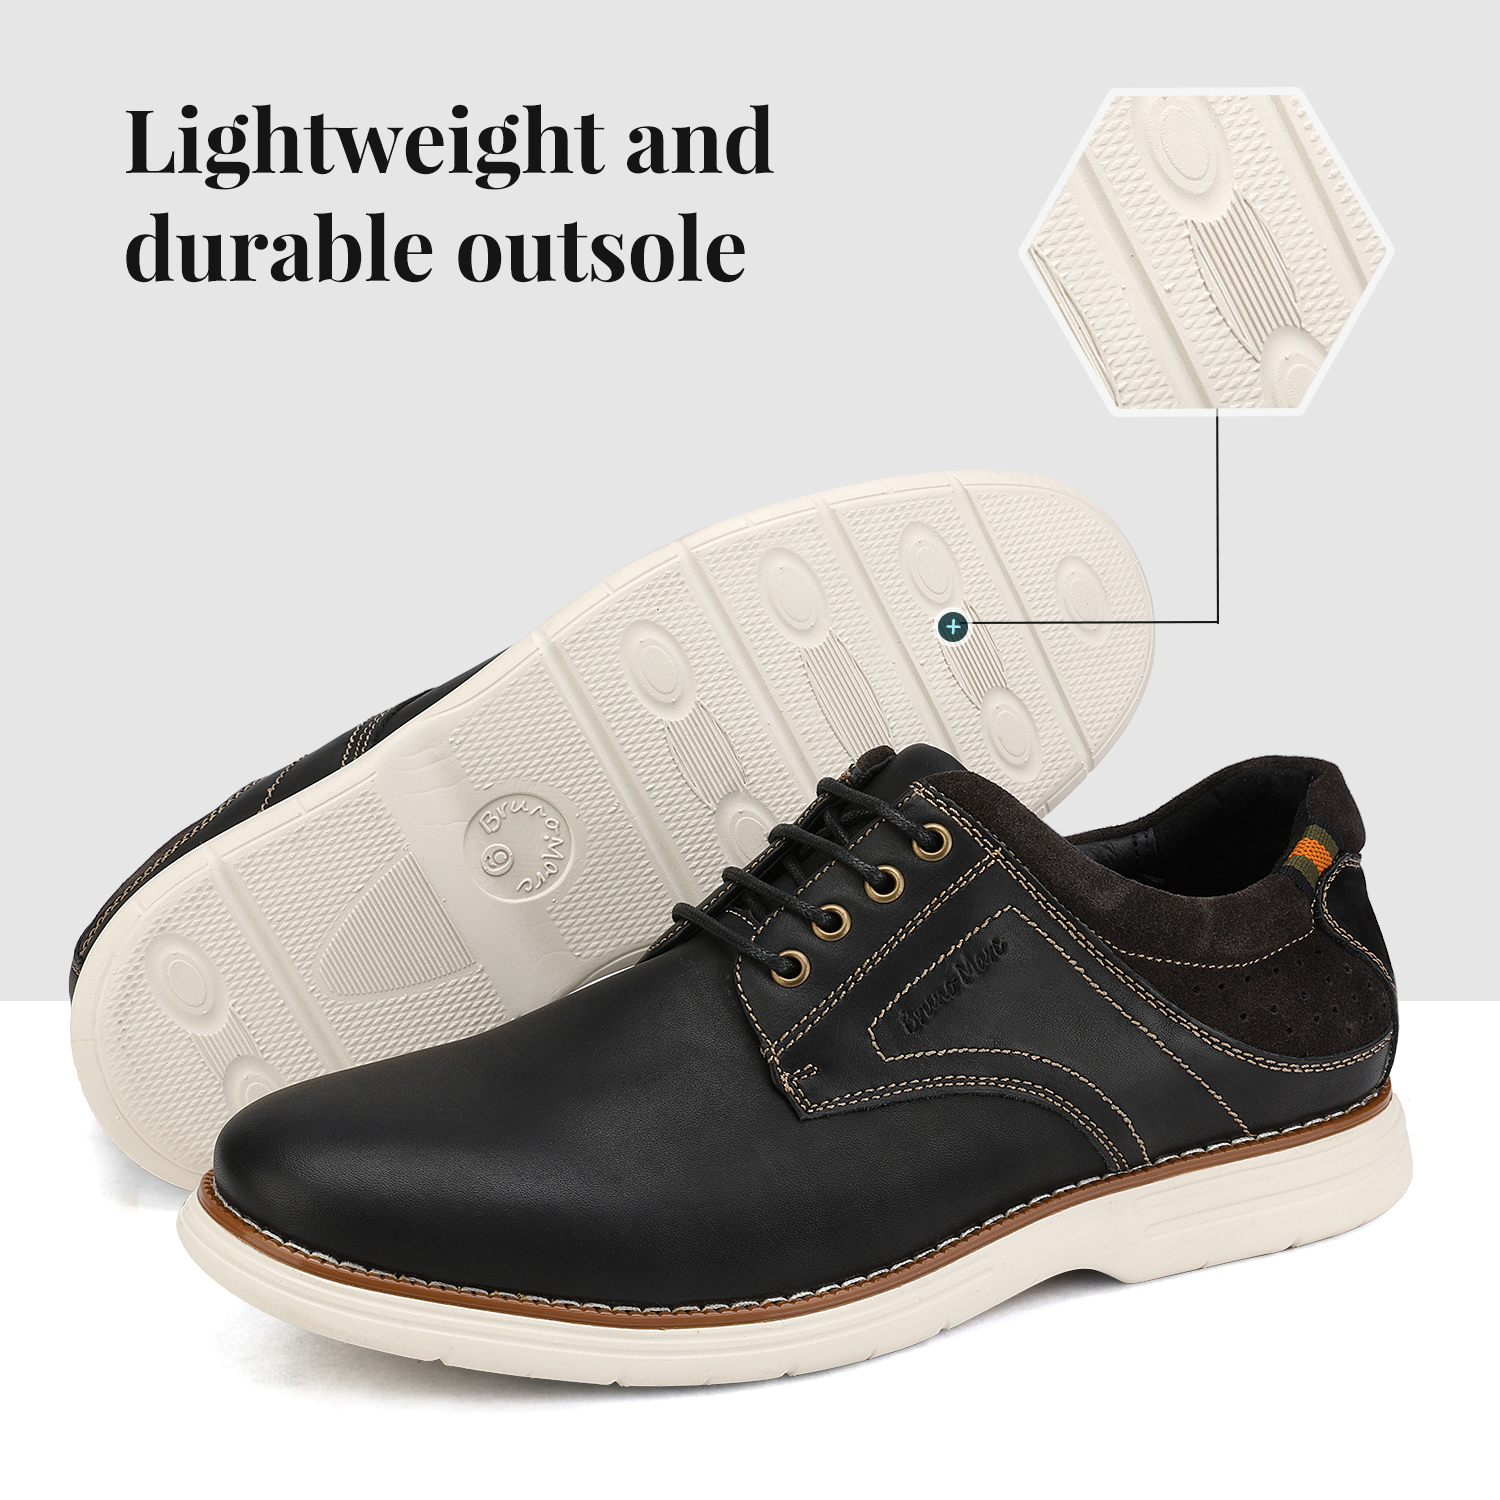 Mens-Fashion-Genuine-Leather-Business-Dress-Sneakers-Casual-Lace-up-Oxford-Shoe thumbnail 25